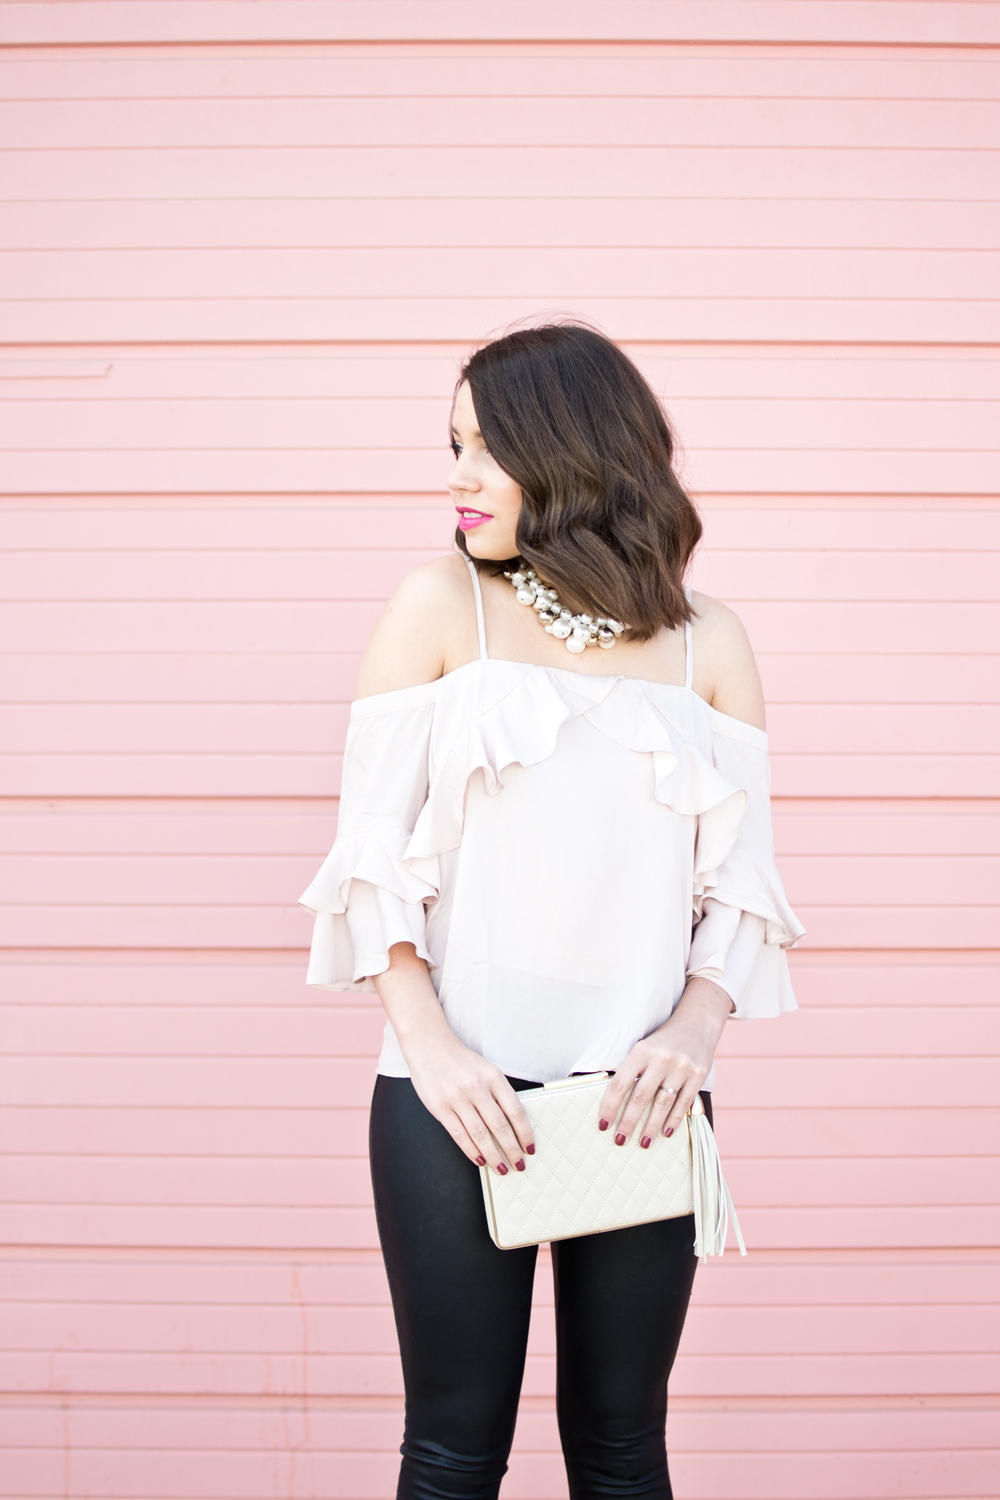 valentines outfit, cold shoulder top, galentines outfit, leather leggings, valentines ootd, spring outfit, valentines outfit inspiration